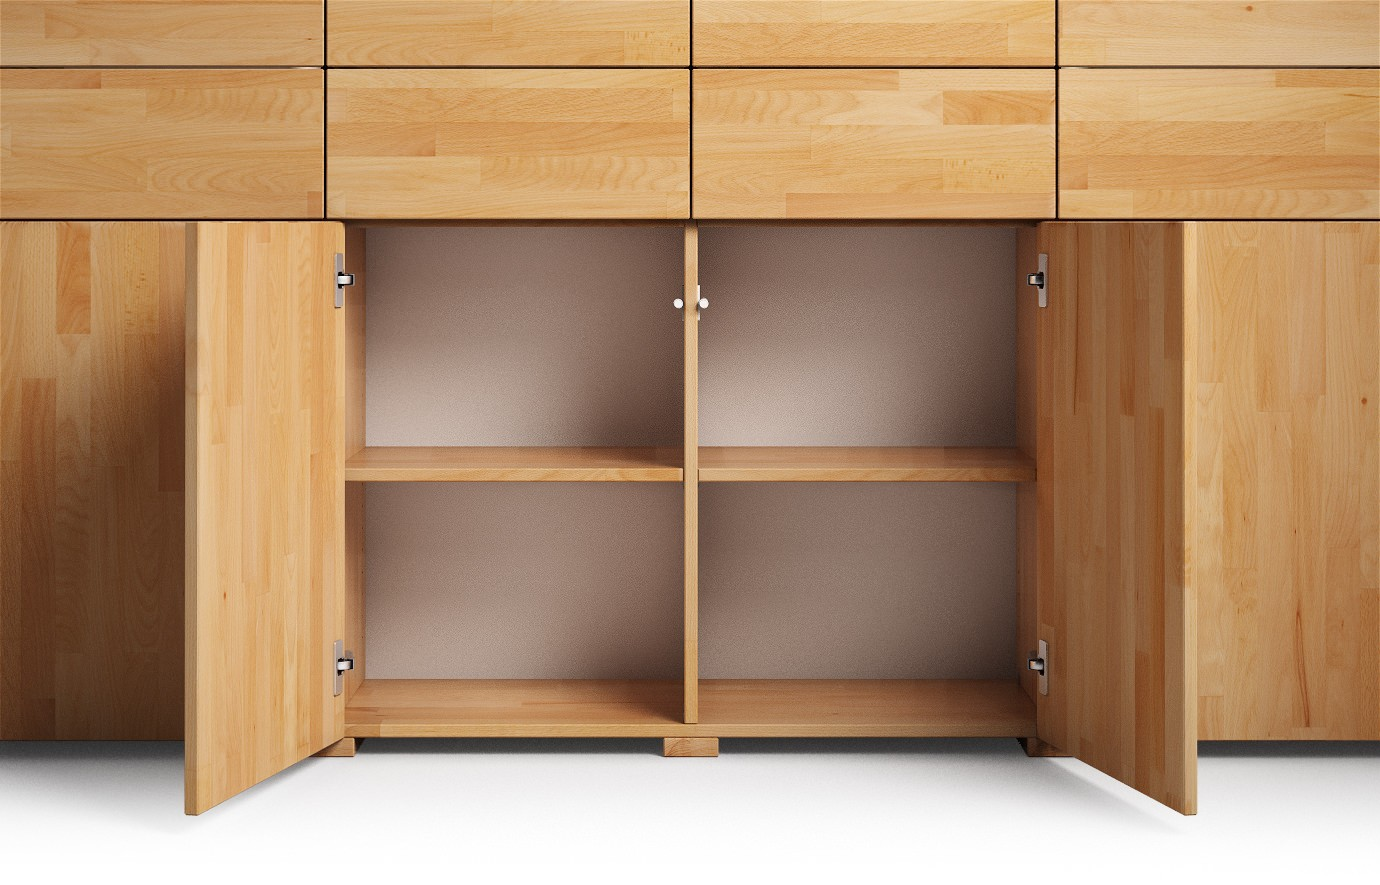 nassau in buche rustikal highboard. Black Bedroom Furniture Sets. Home Design Ideas